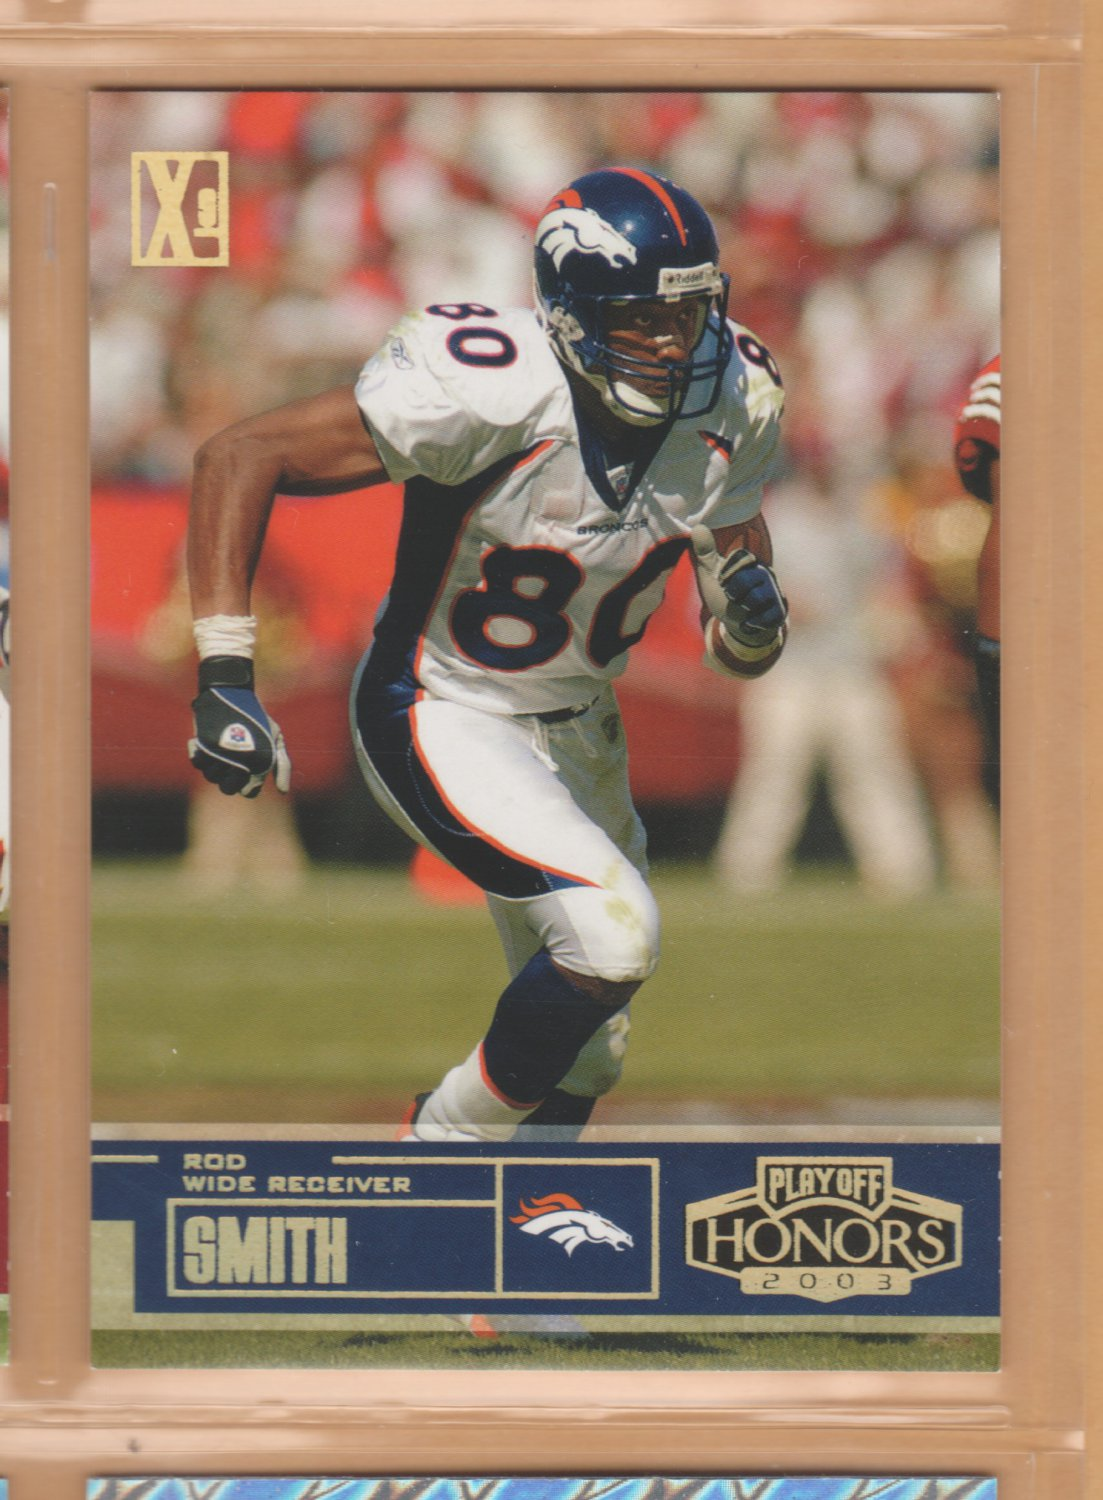 2003 Playoff Honors X's Gold Rod Smith Broncos /250